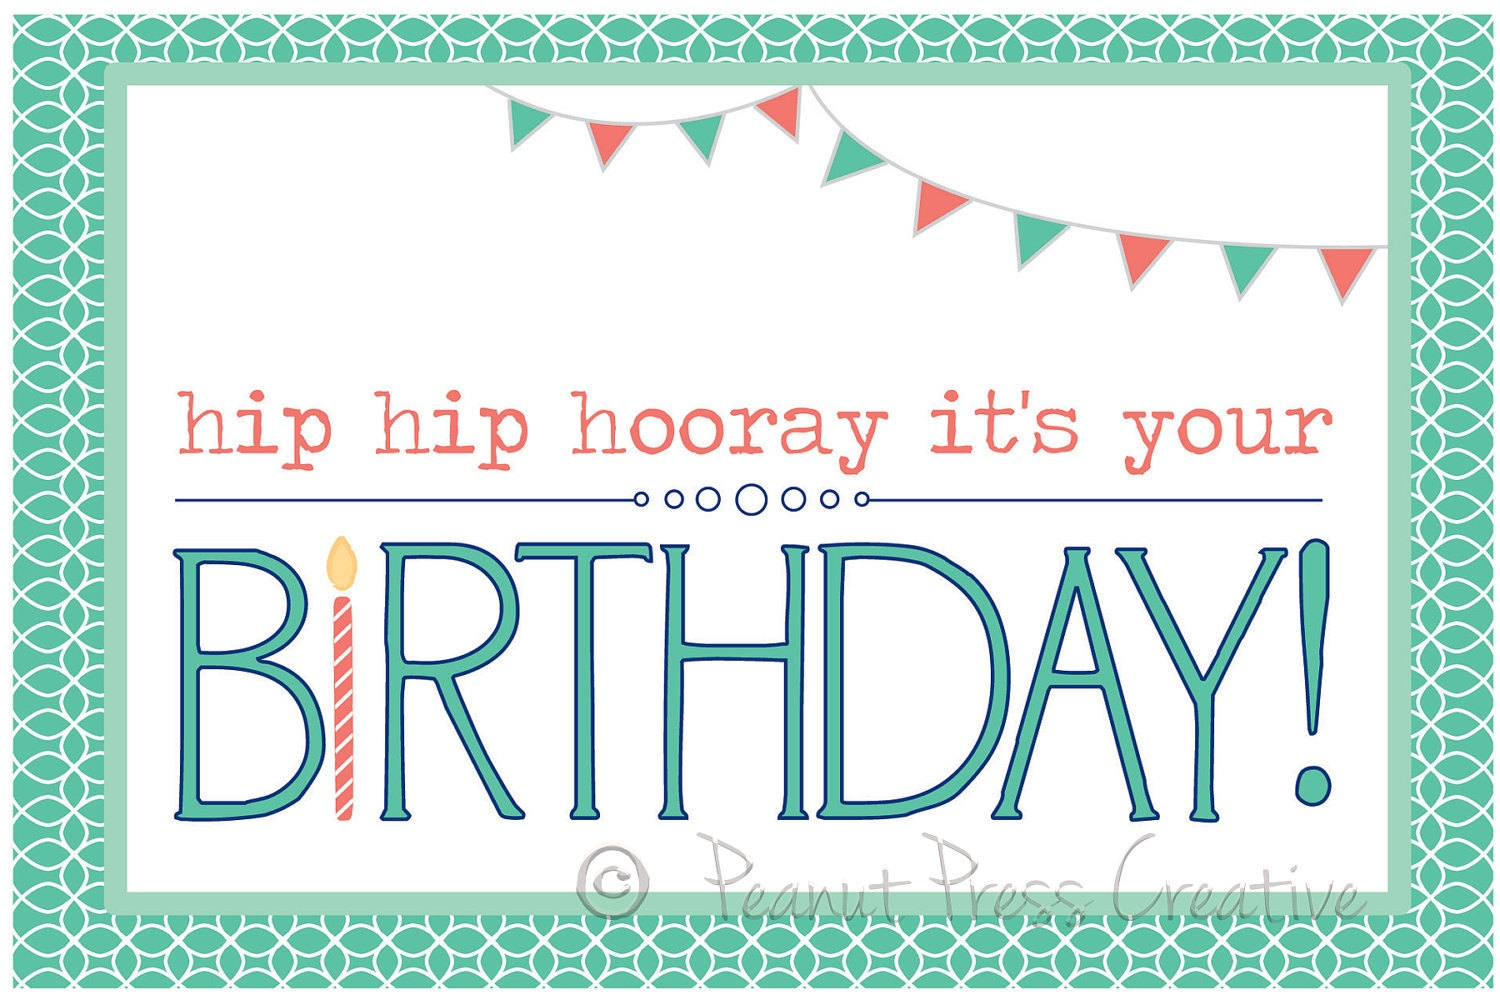 birthday card pdf ; birthday-card-print-out-lovely-happy-birthday-printable-card-pdf-of-birthday-card-print-out